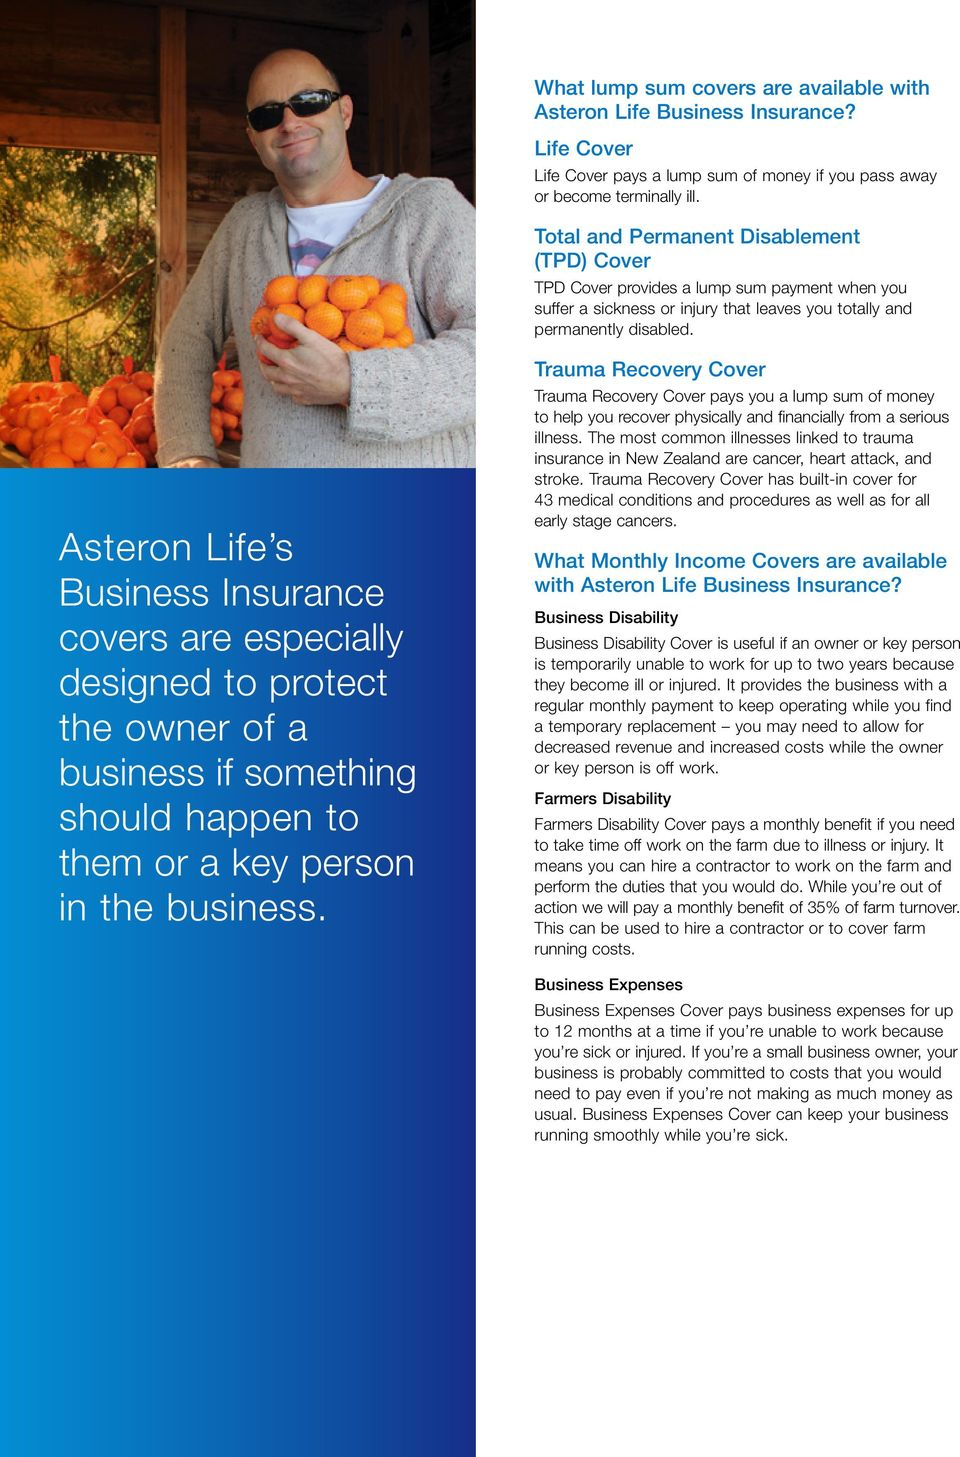 Asteron Life s Business Insurance covers are especially designed to protect the owner of a business if something should happen to them or a key person in the business.